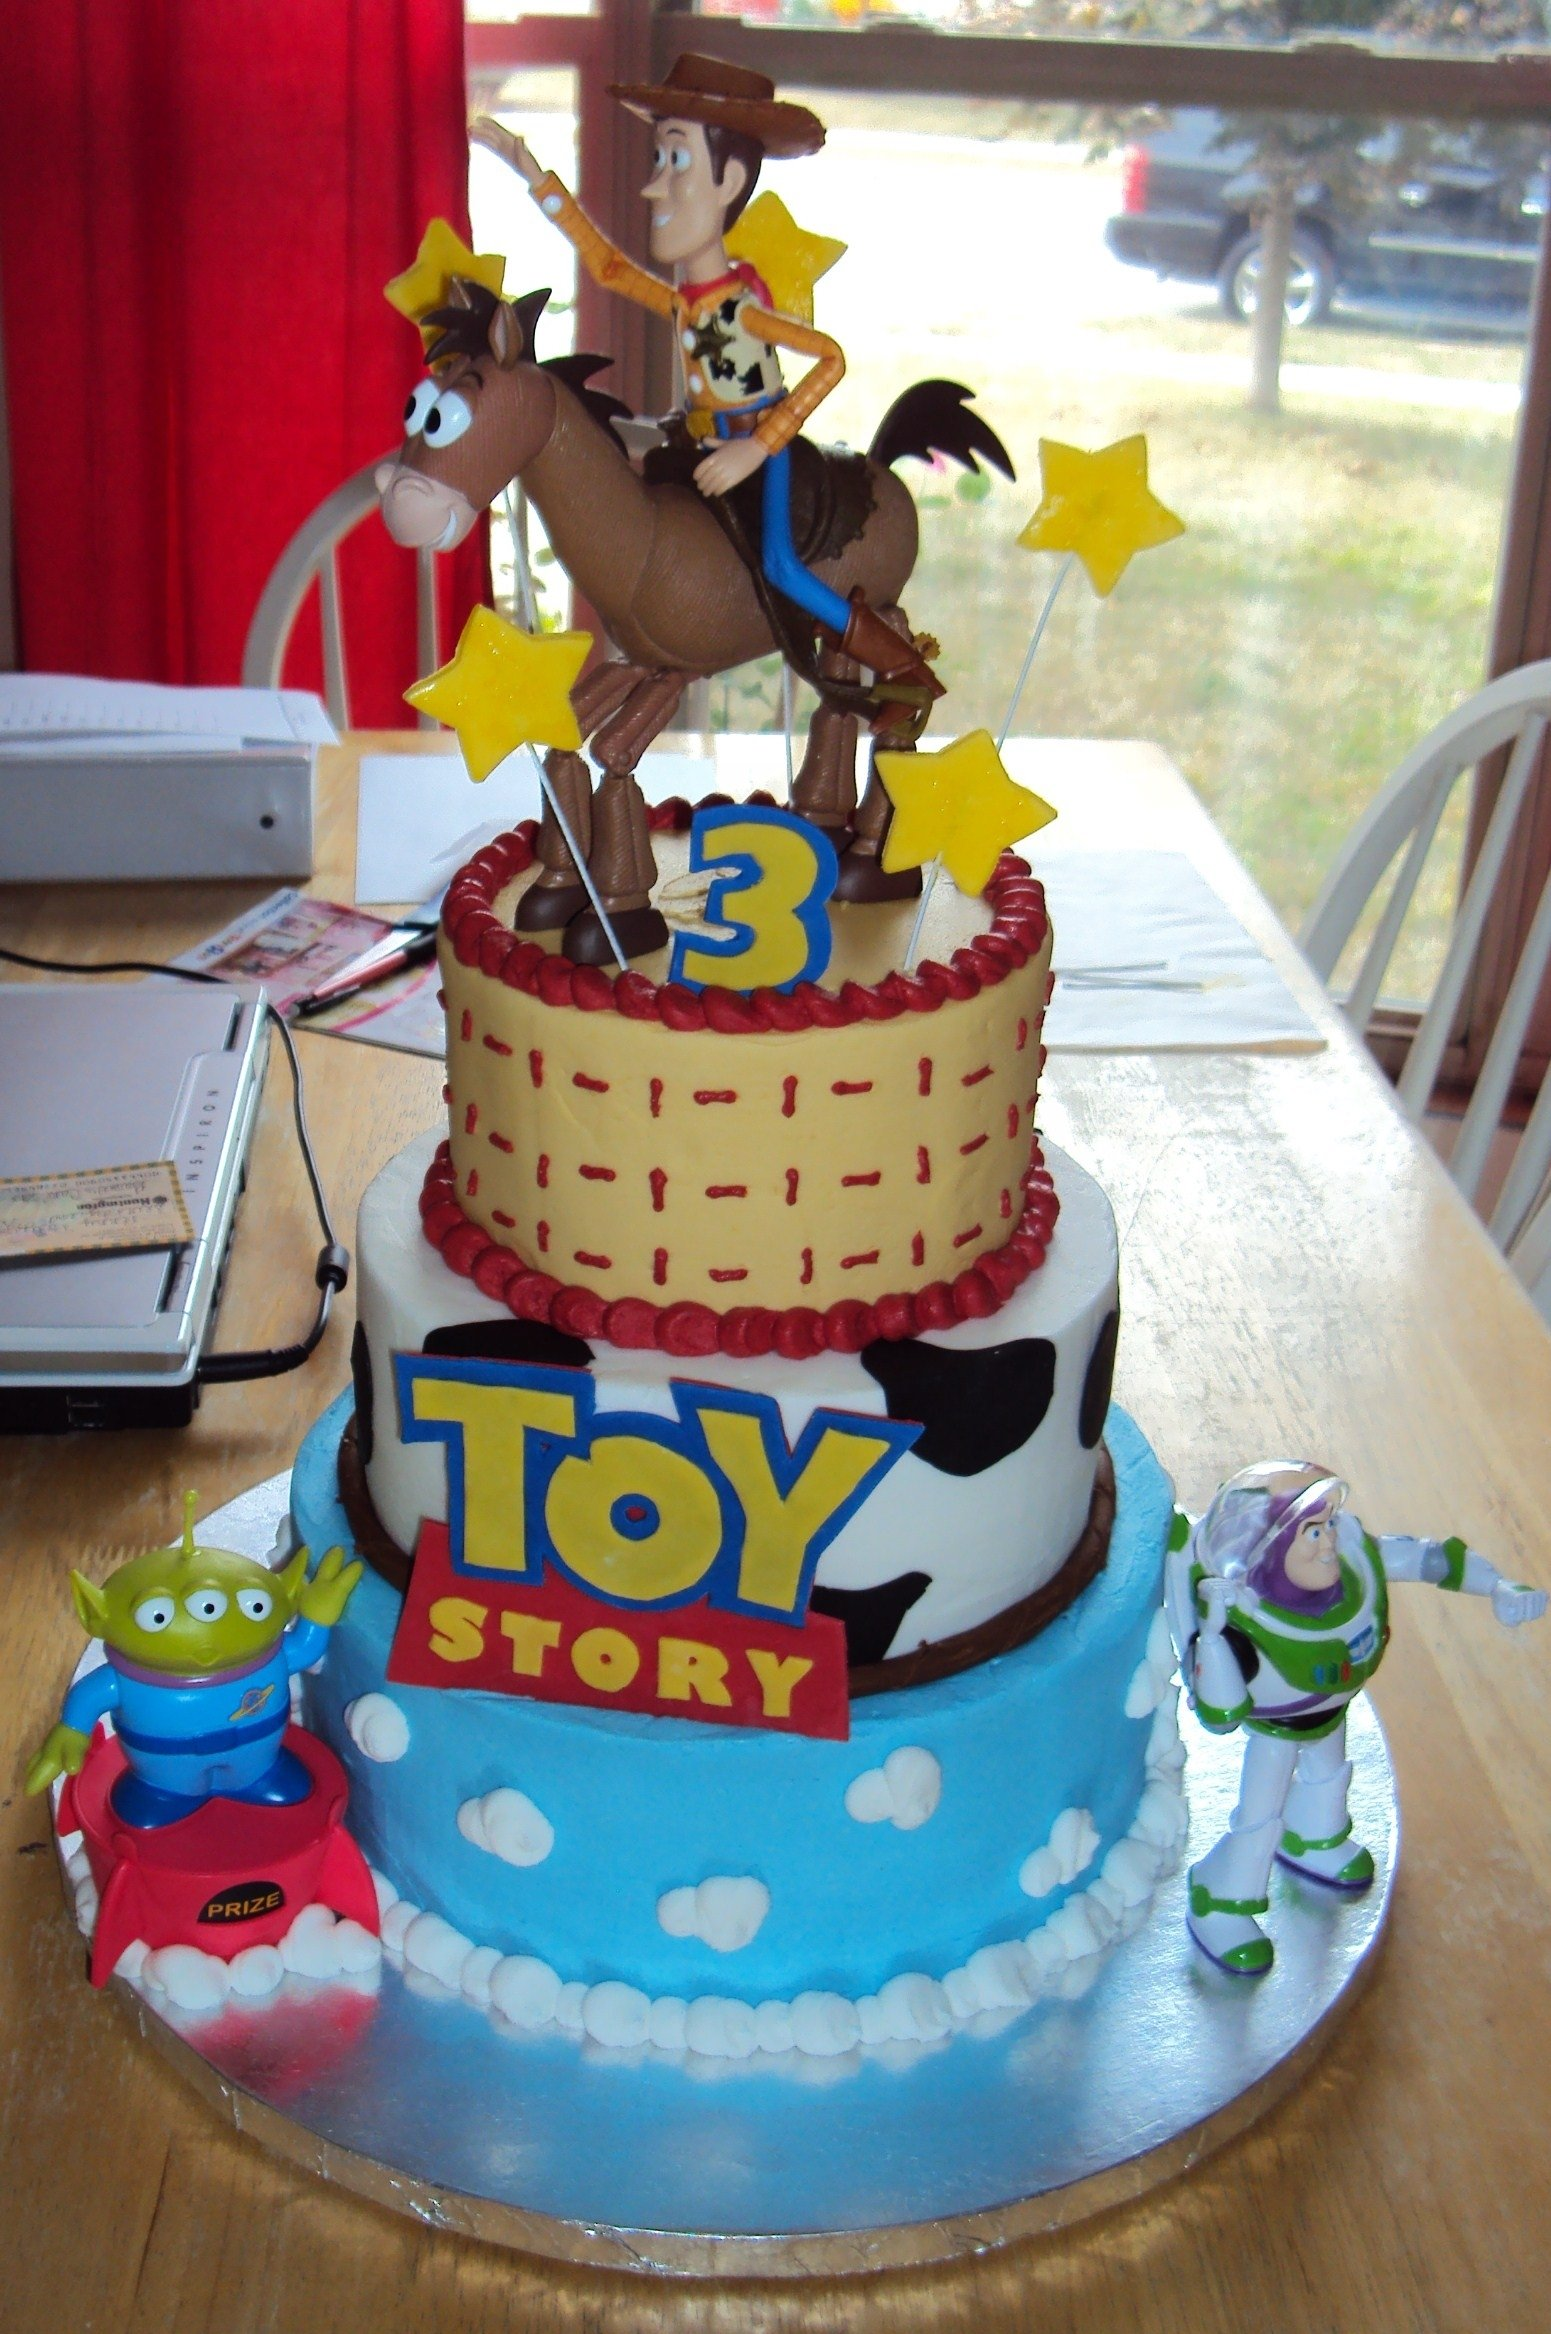 10 Spectacular Toy Story Birthday Cake Ideas toy story cakes decoration ideas little birthday cakes